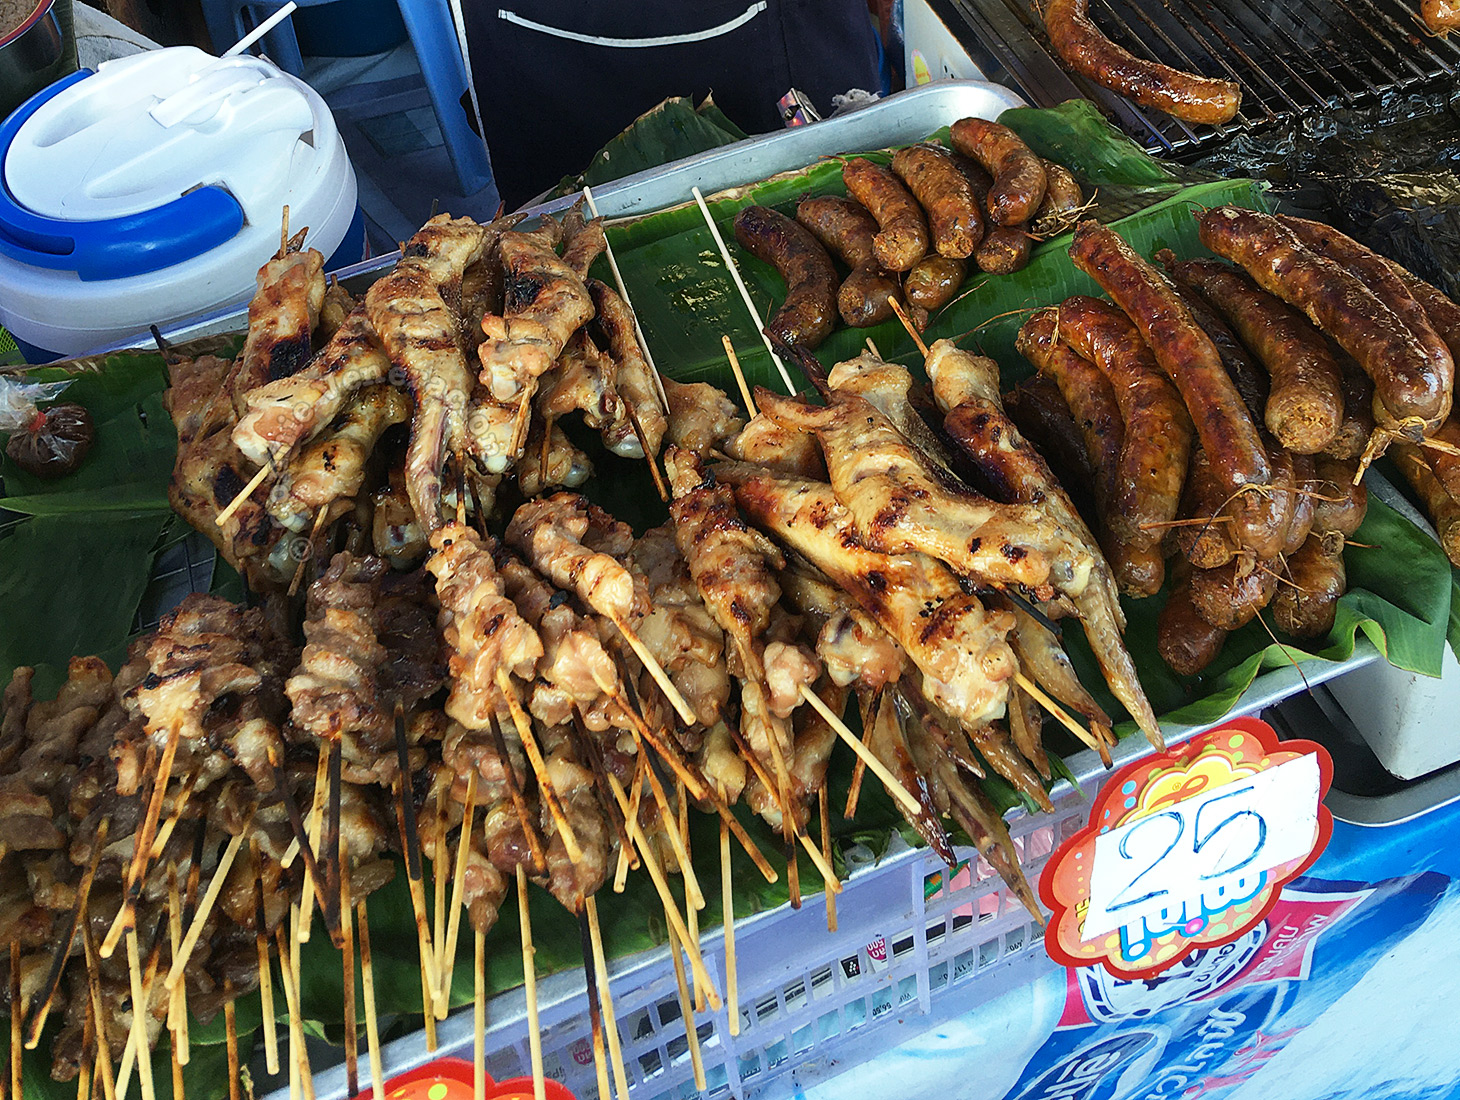 Sate stall at the Chiang Mai Sunday Market